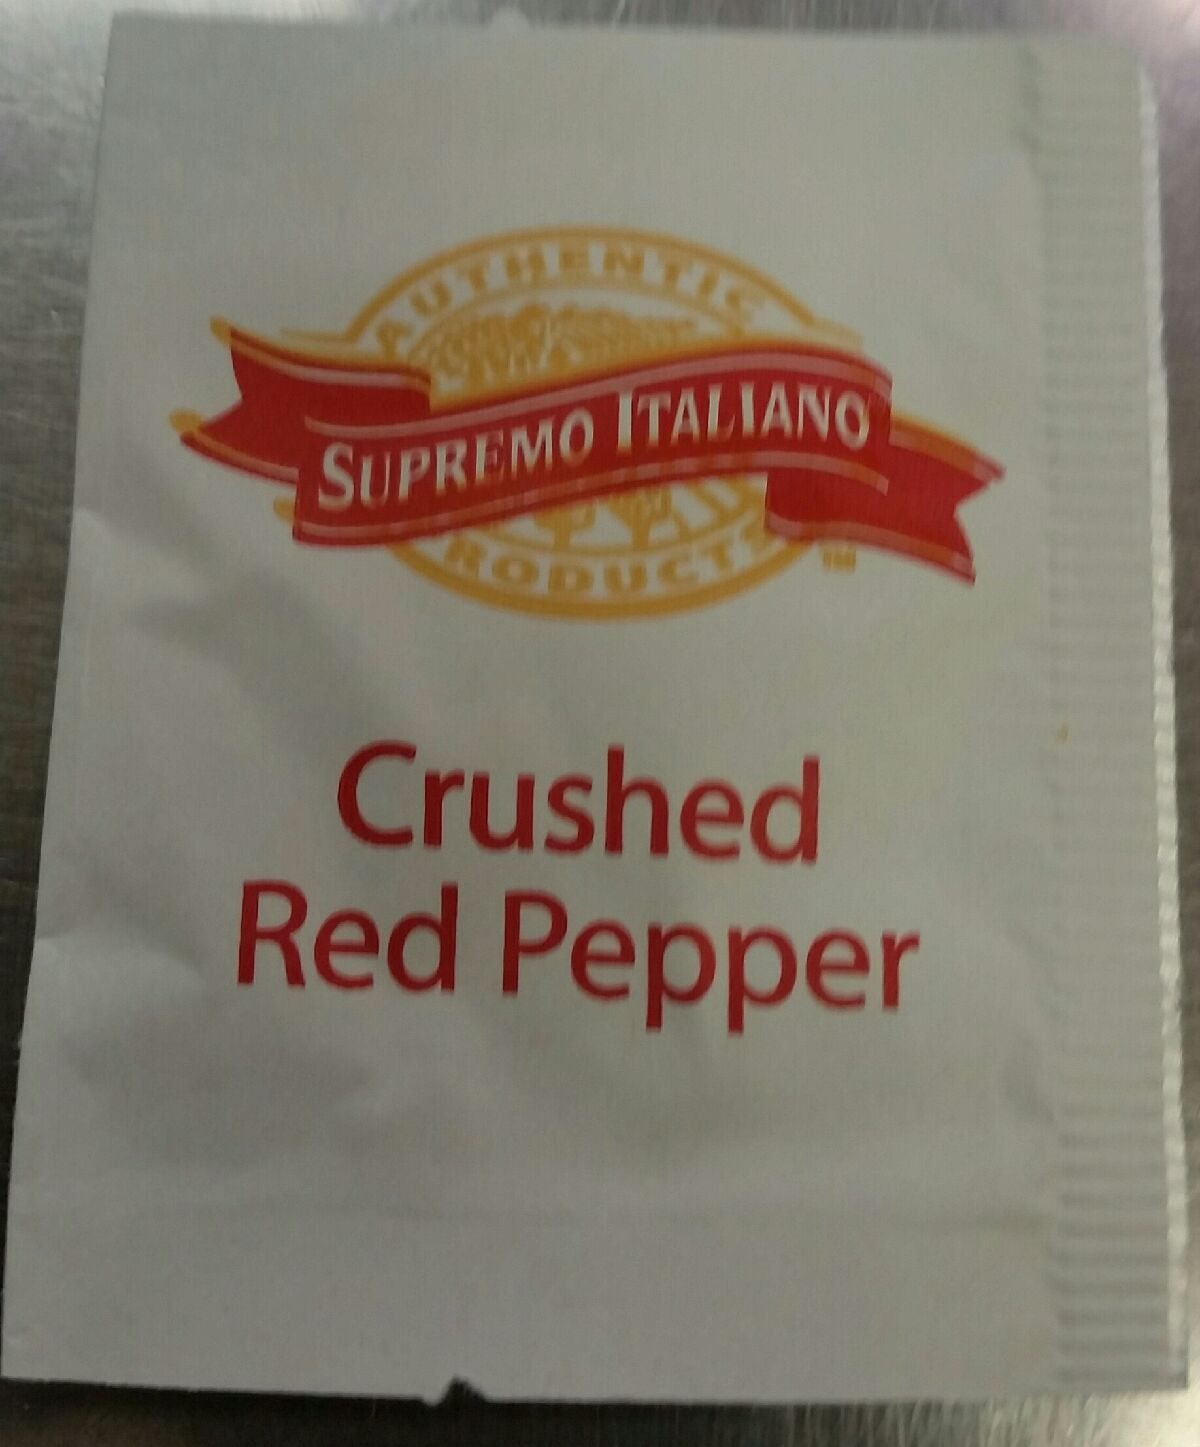 Crushed Red Pepper Image